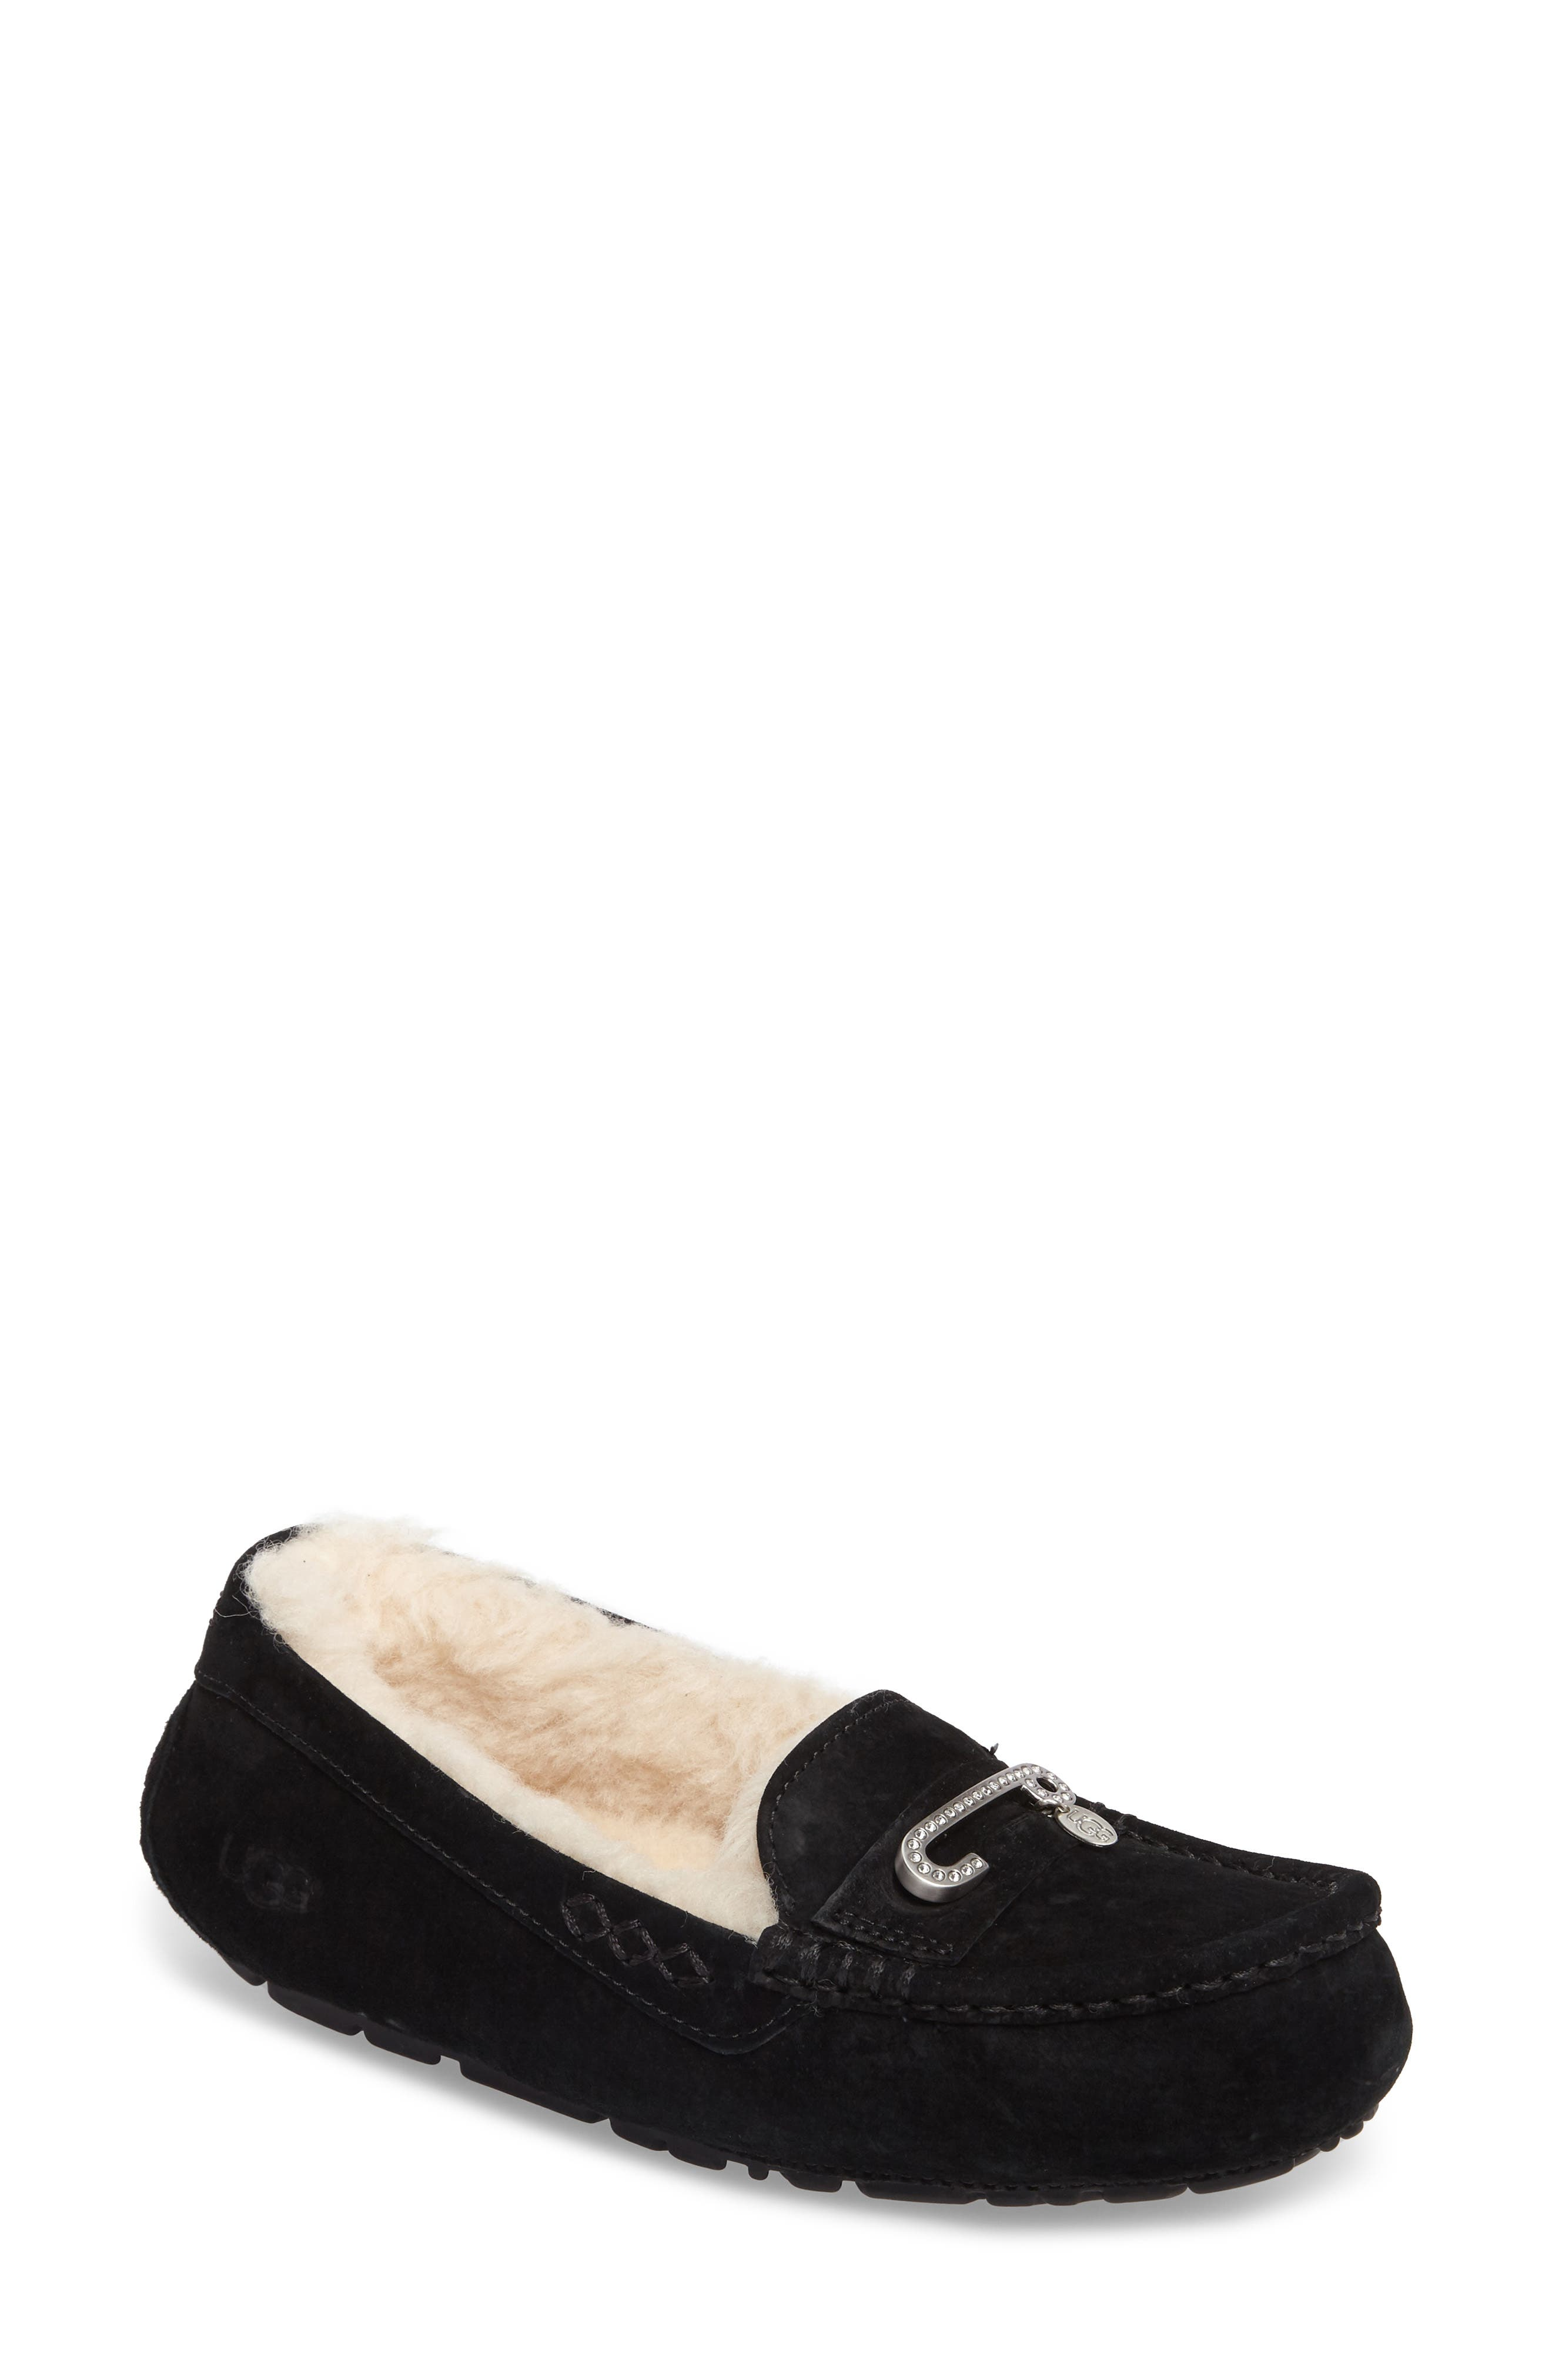 Florencia Water Resistant Silkee<sup>™</sup> Suede Slipper,                         Main,                         color, 001